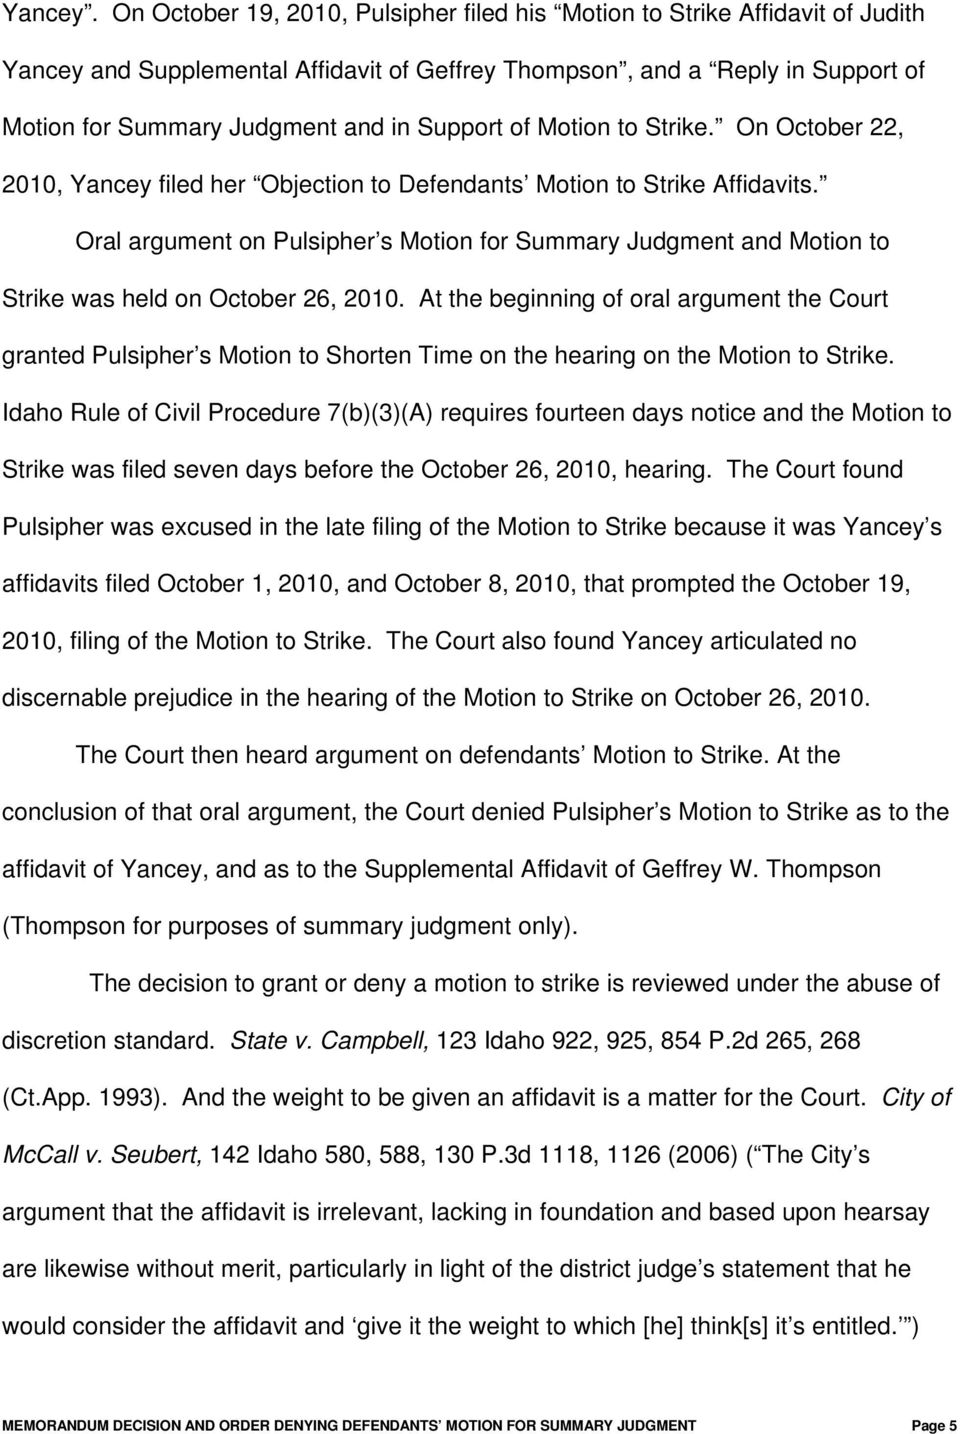 Support of Motion to Strike. On October 22, 2010, Yancey filed her Objection to Defendants Motion to Strike Affidavits.